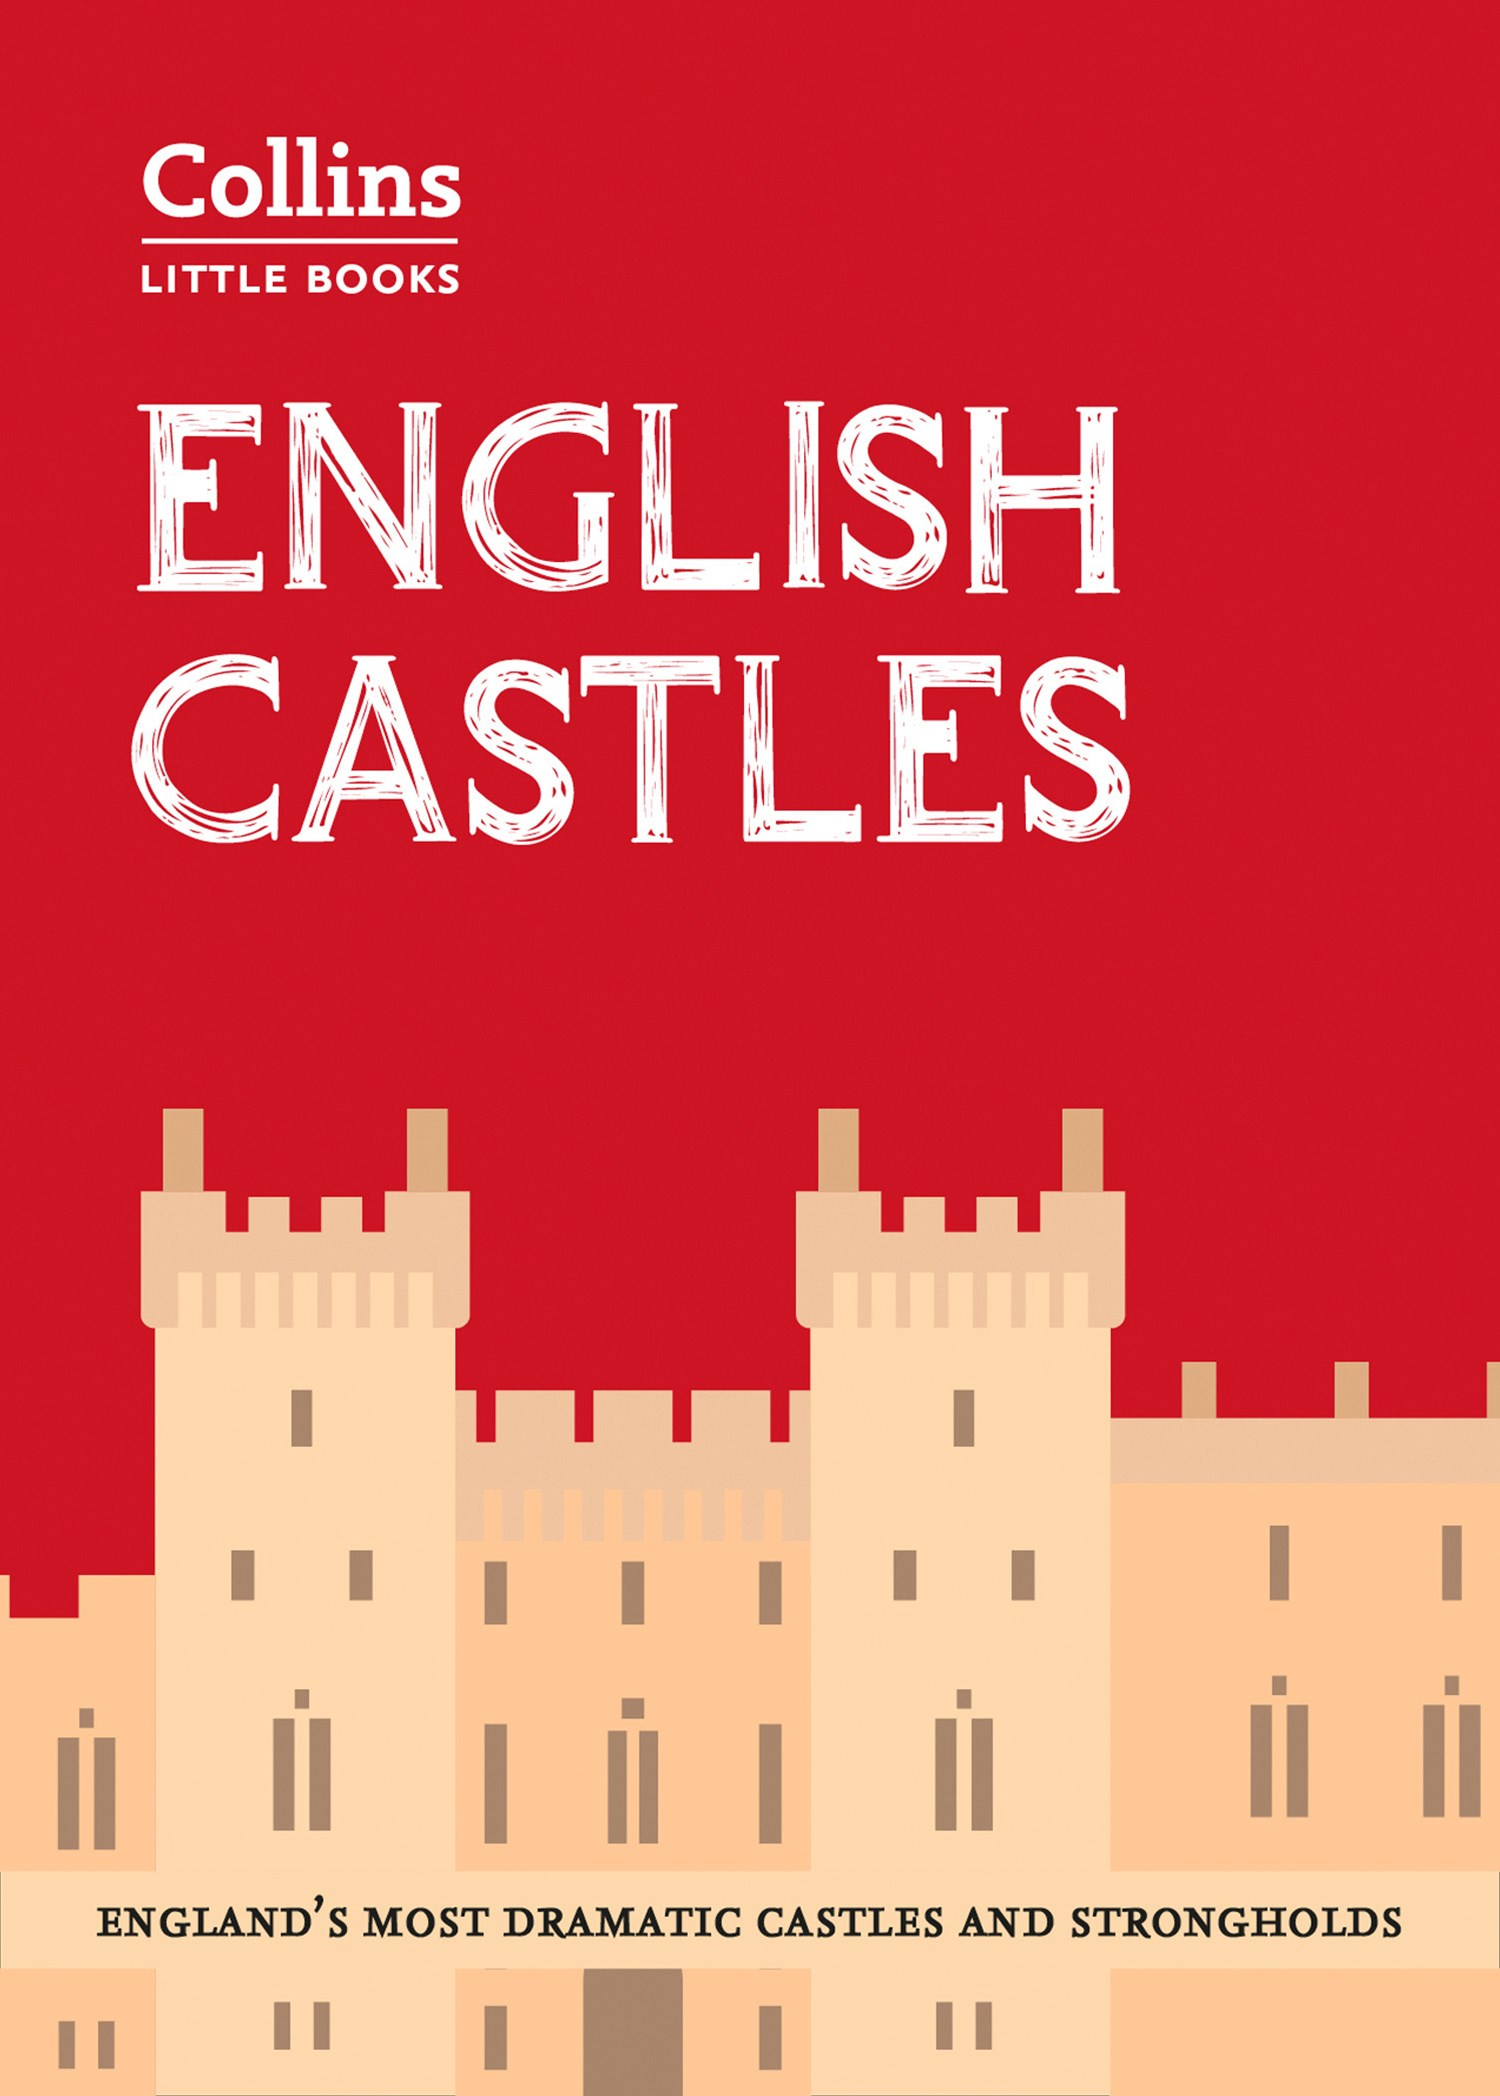 Collins Little Books - English Castles